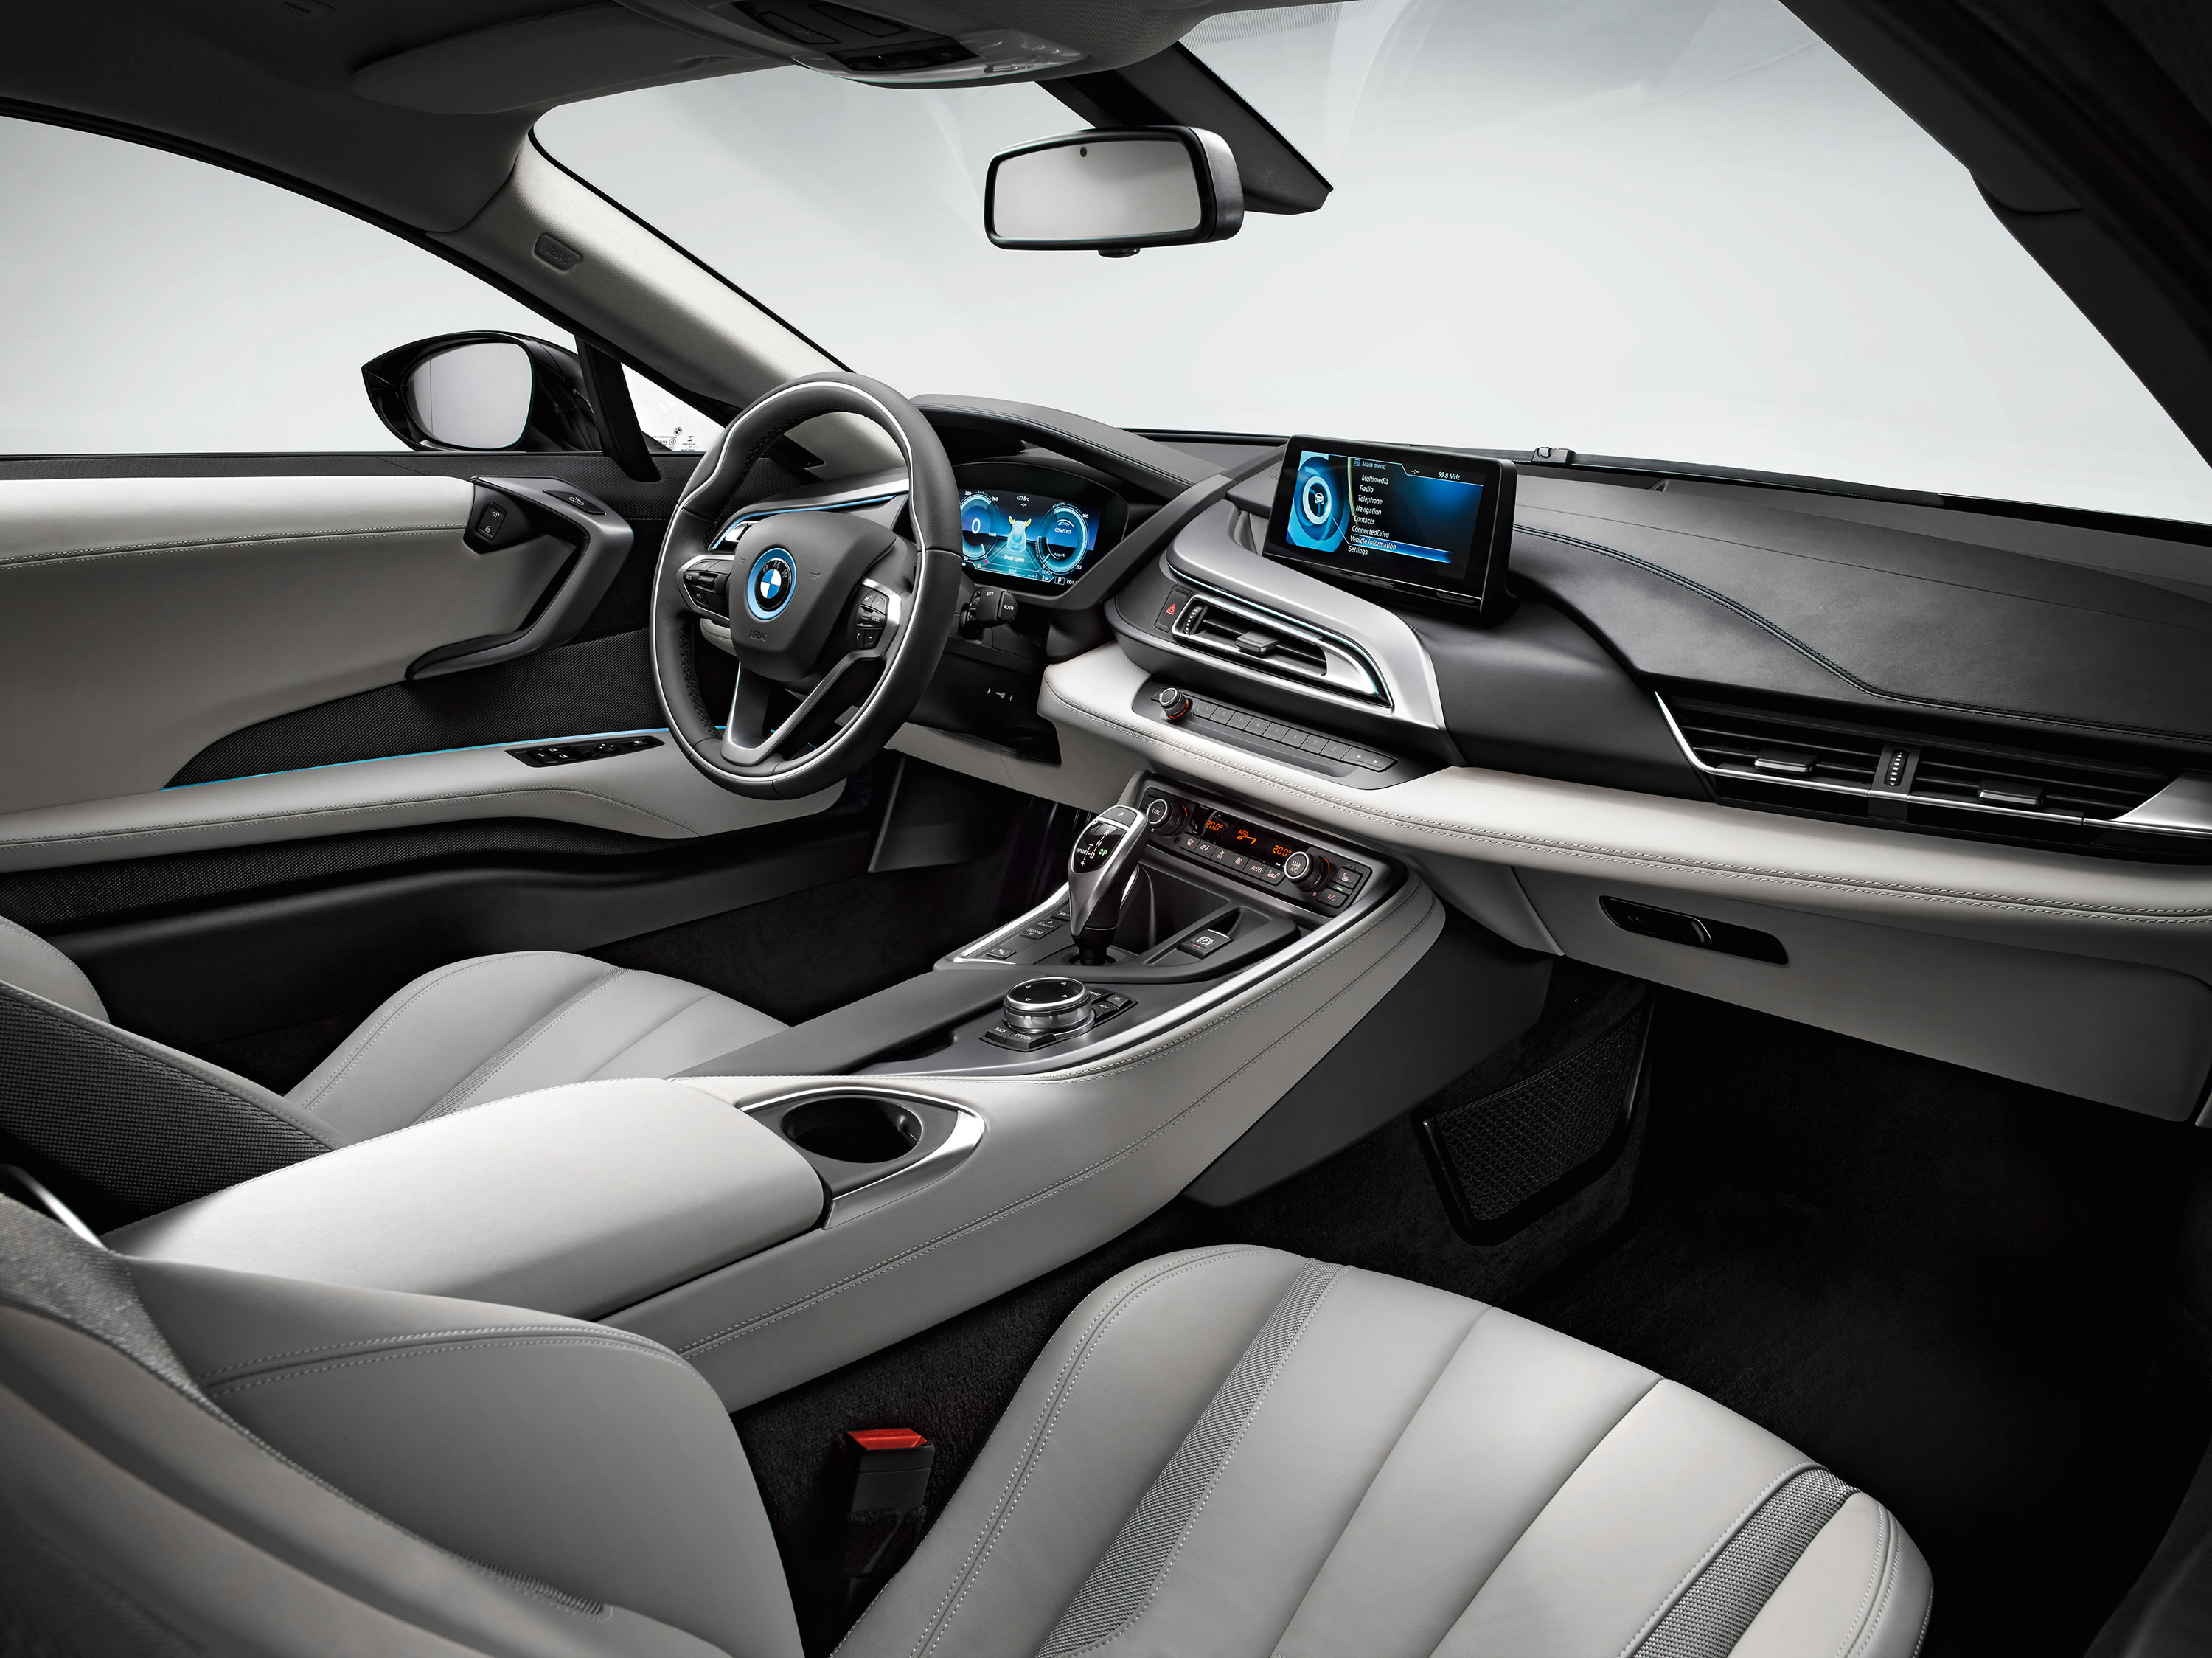 BMW I Photos Specs And Review RS - 2015 bmw i8 msrp